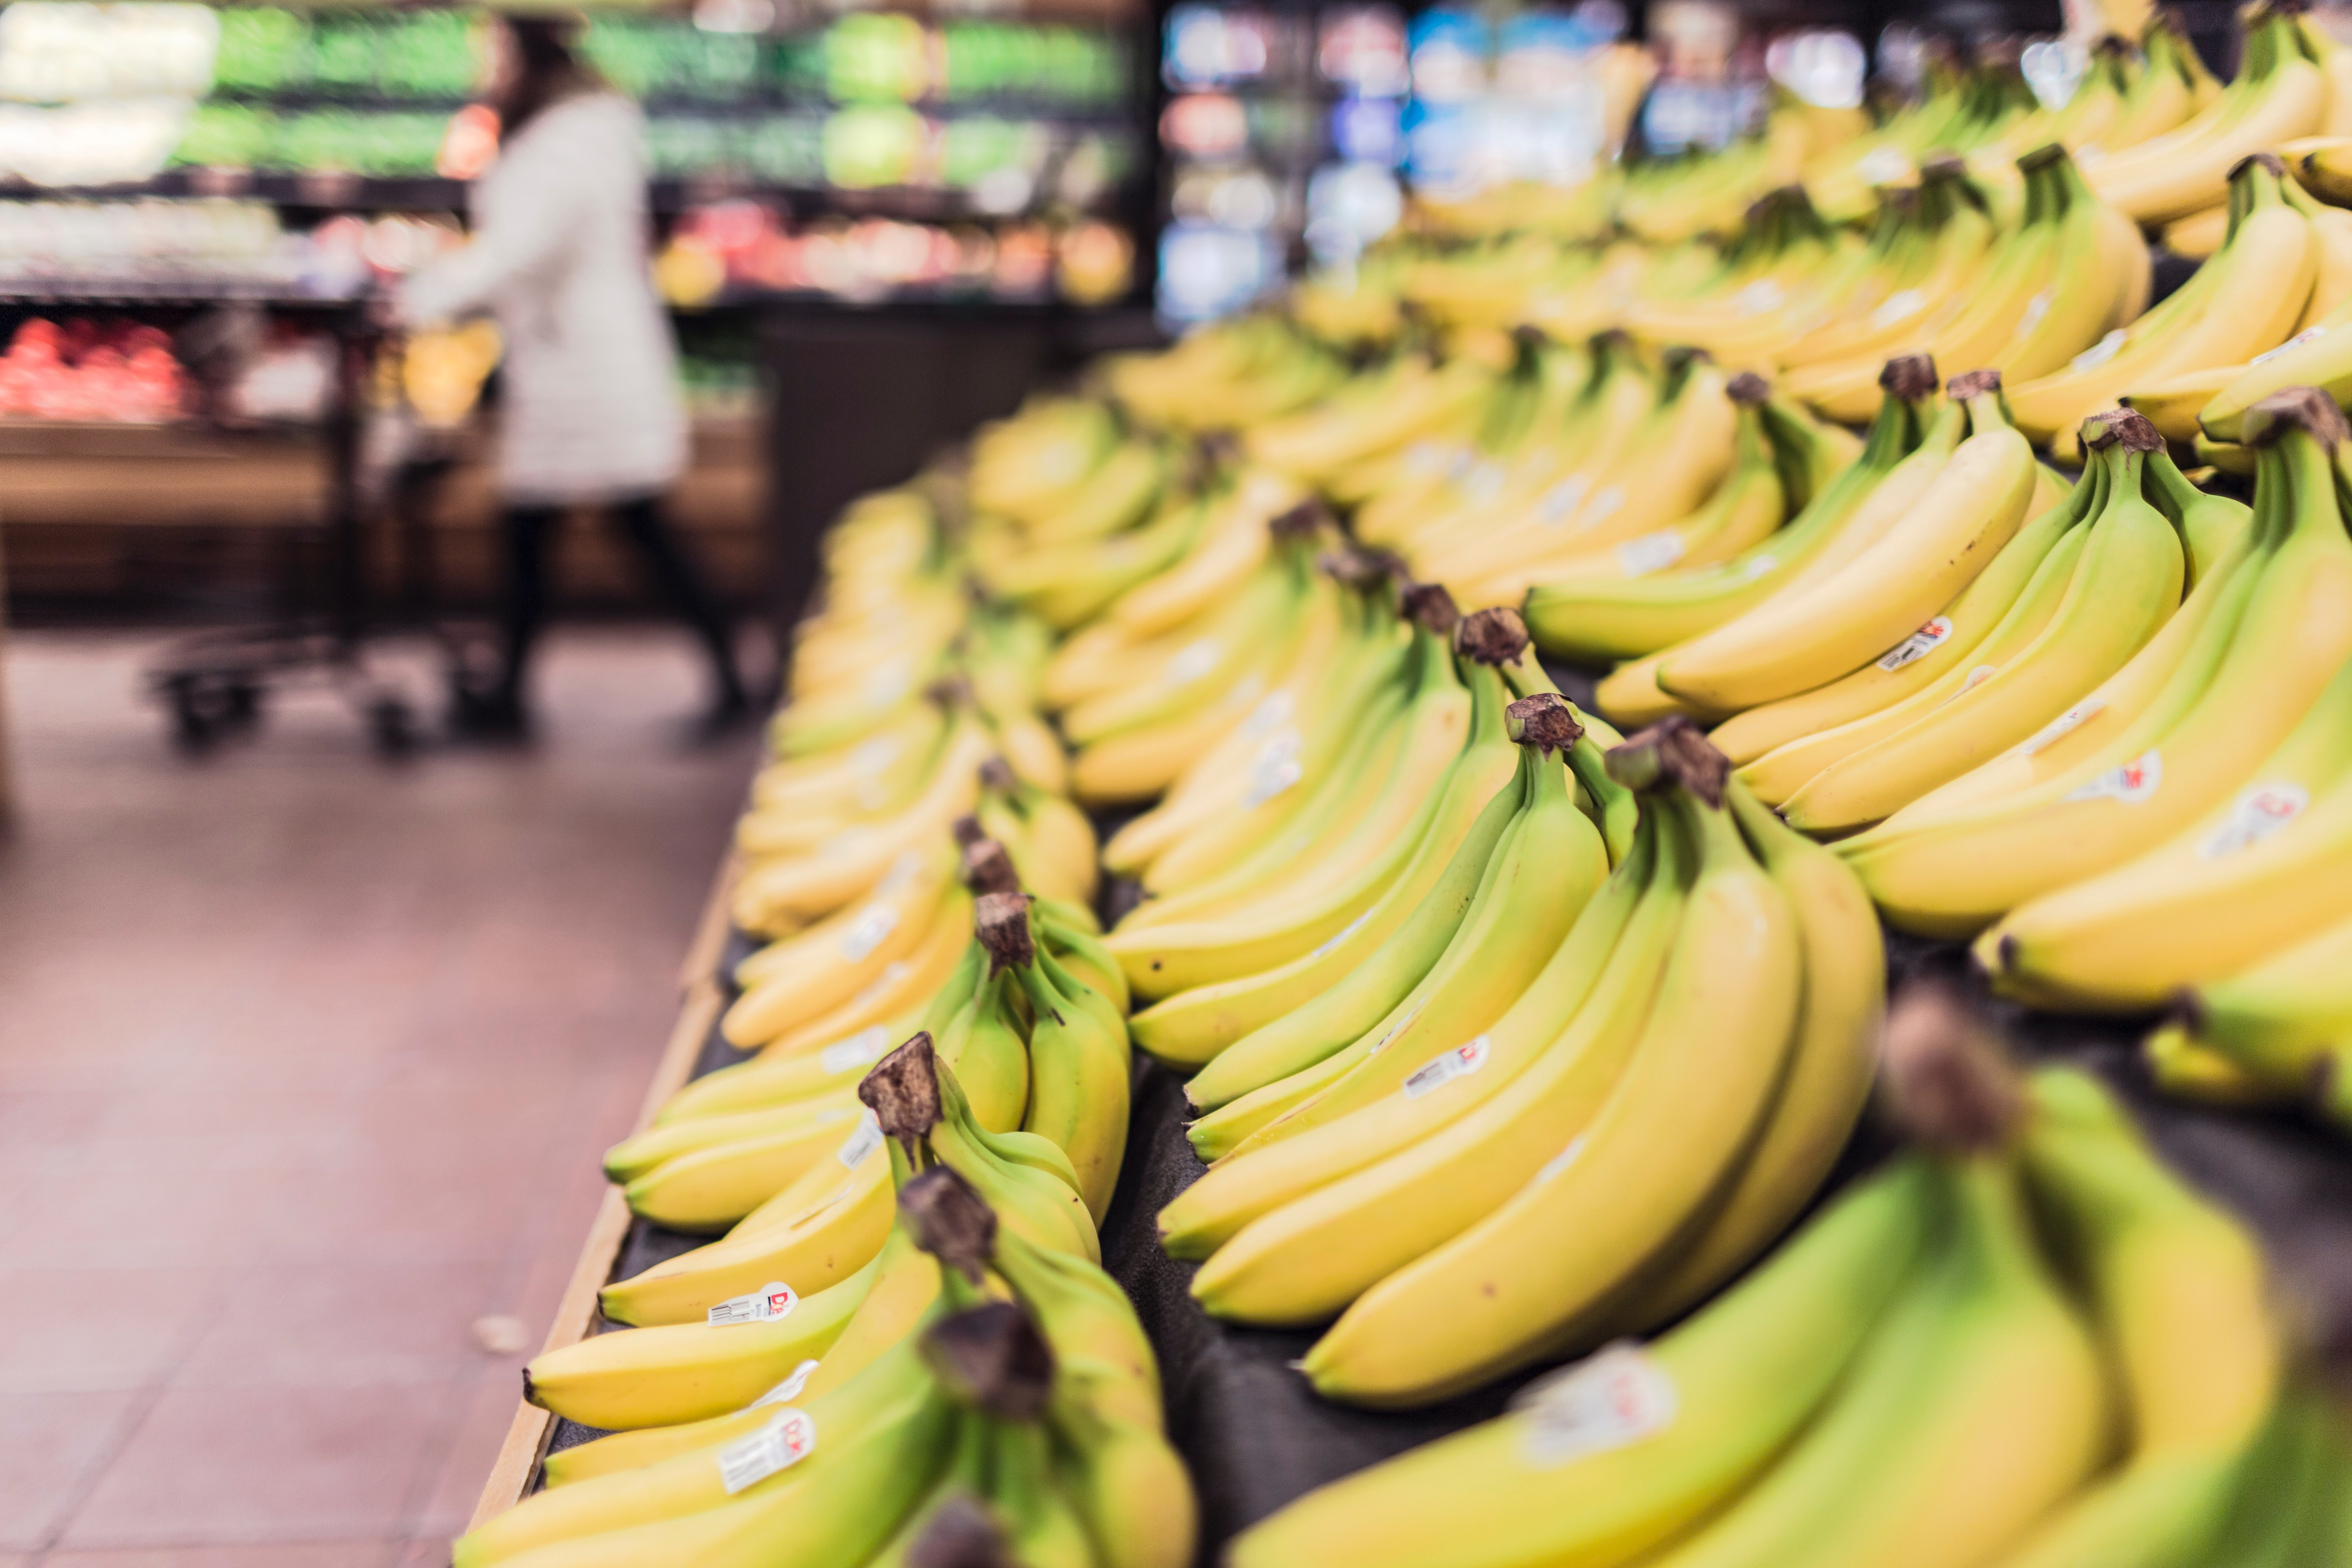 New Invention could make Produce Last Longer